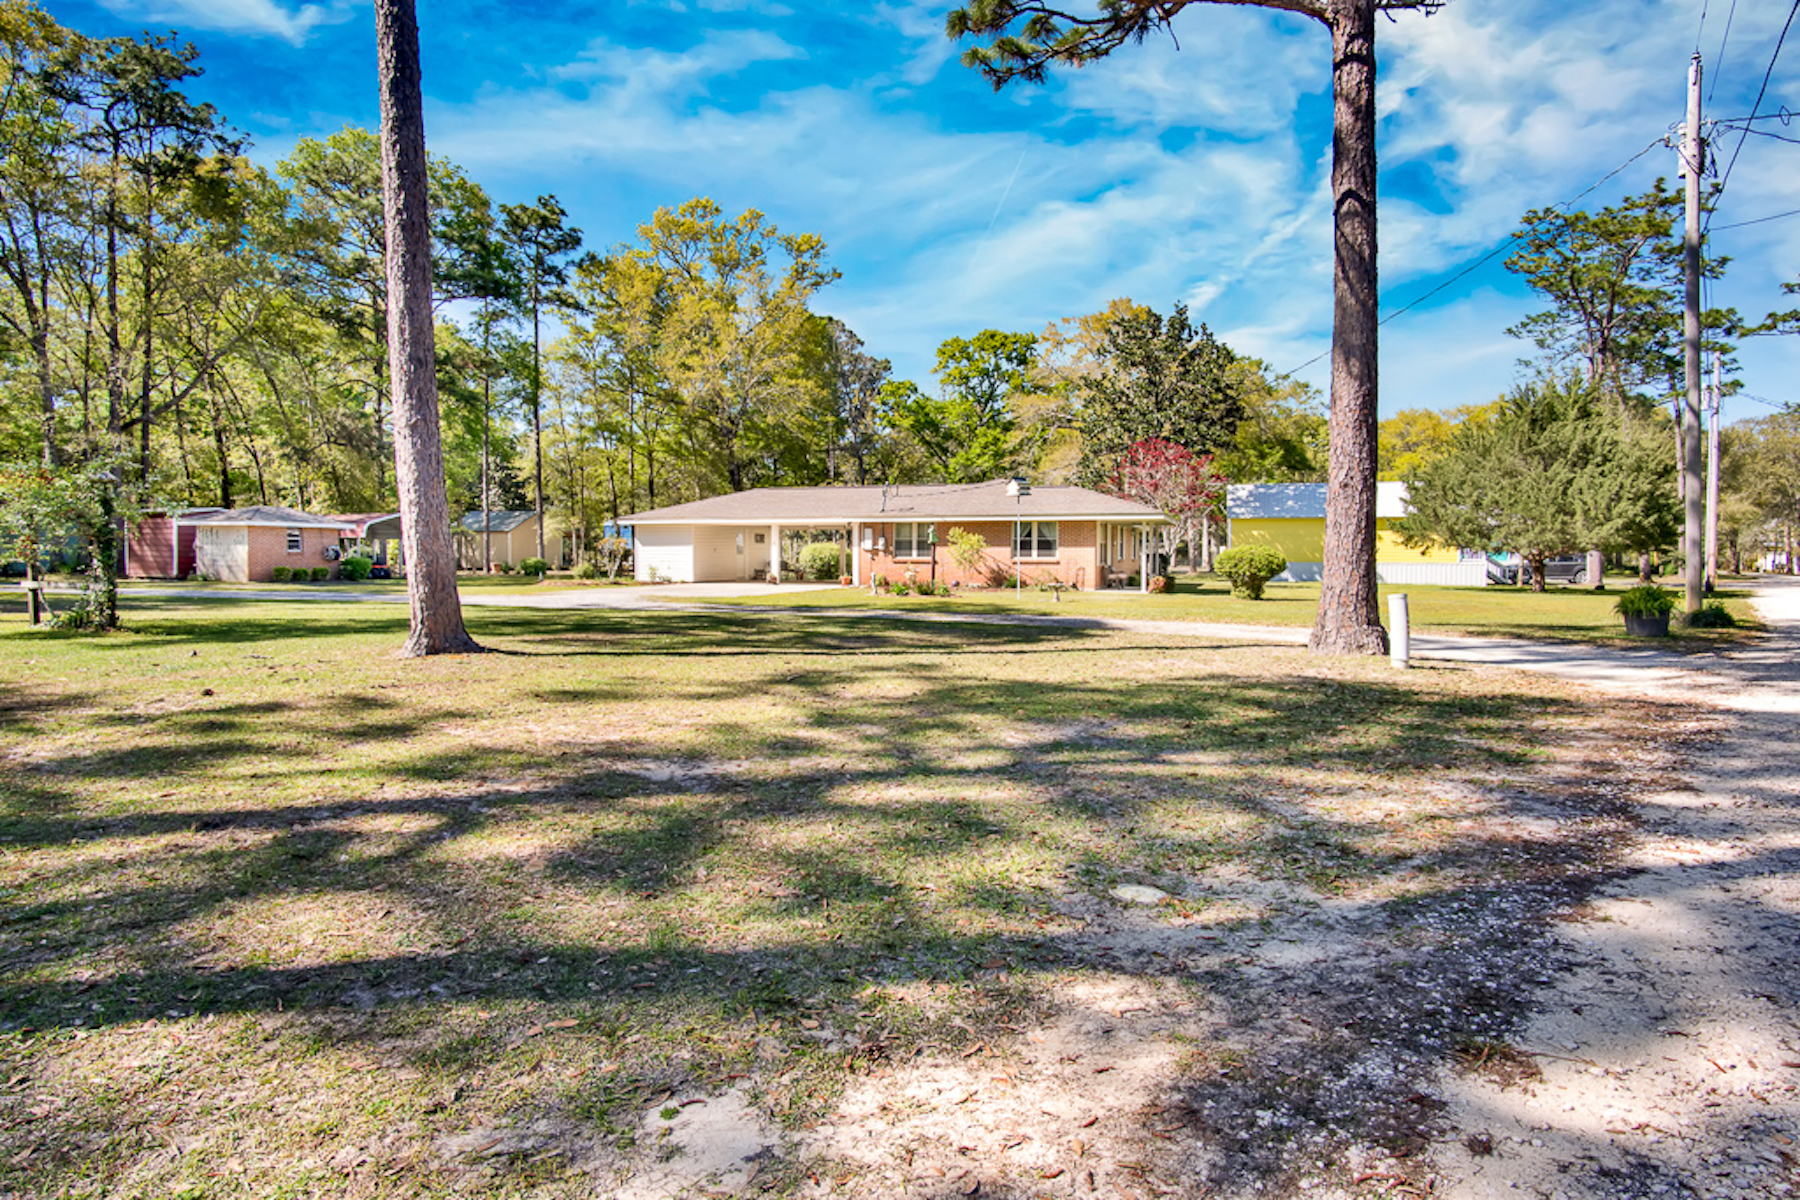 Single Family Home for Active at Bon Secour River 6781 Piney Woods Rd Foley, Alabama 36535 United States